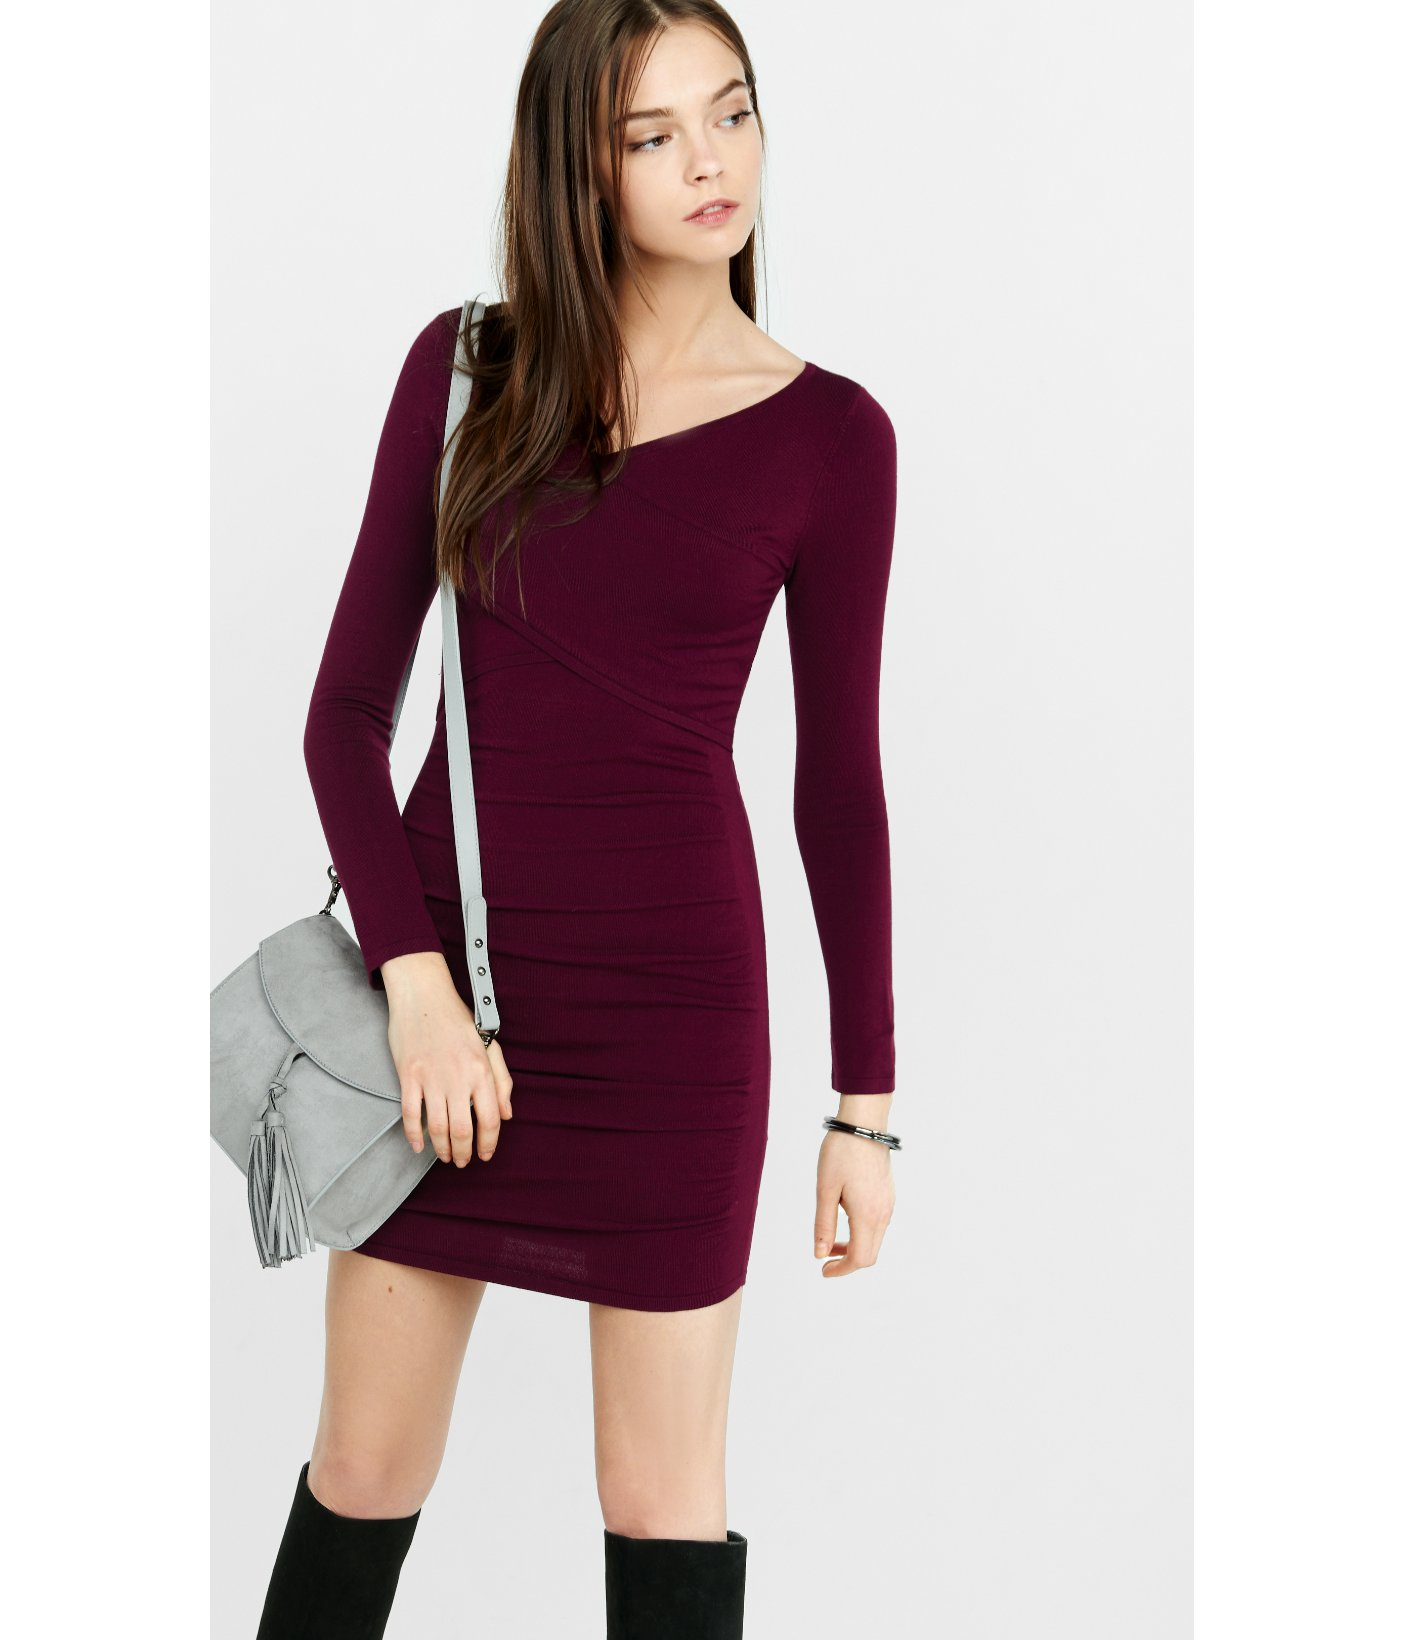 Showing 62 purple sweaters dress Related Searches: Purple A Line Dresses Purple Sleeveless Dresses Purple Fitted Dresses Purple Back Zip Dresses Purple Zip Closure Dresses View Related Searches Free Shipping $40+ at H&M H&M Mohair-blend Sweater.